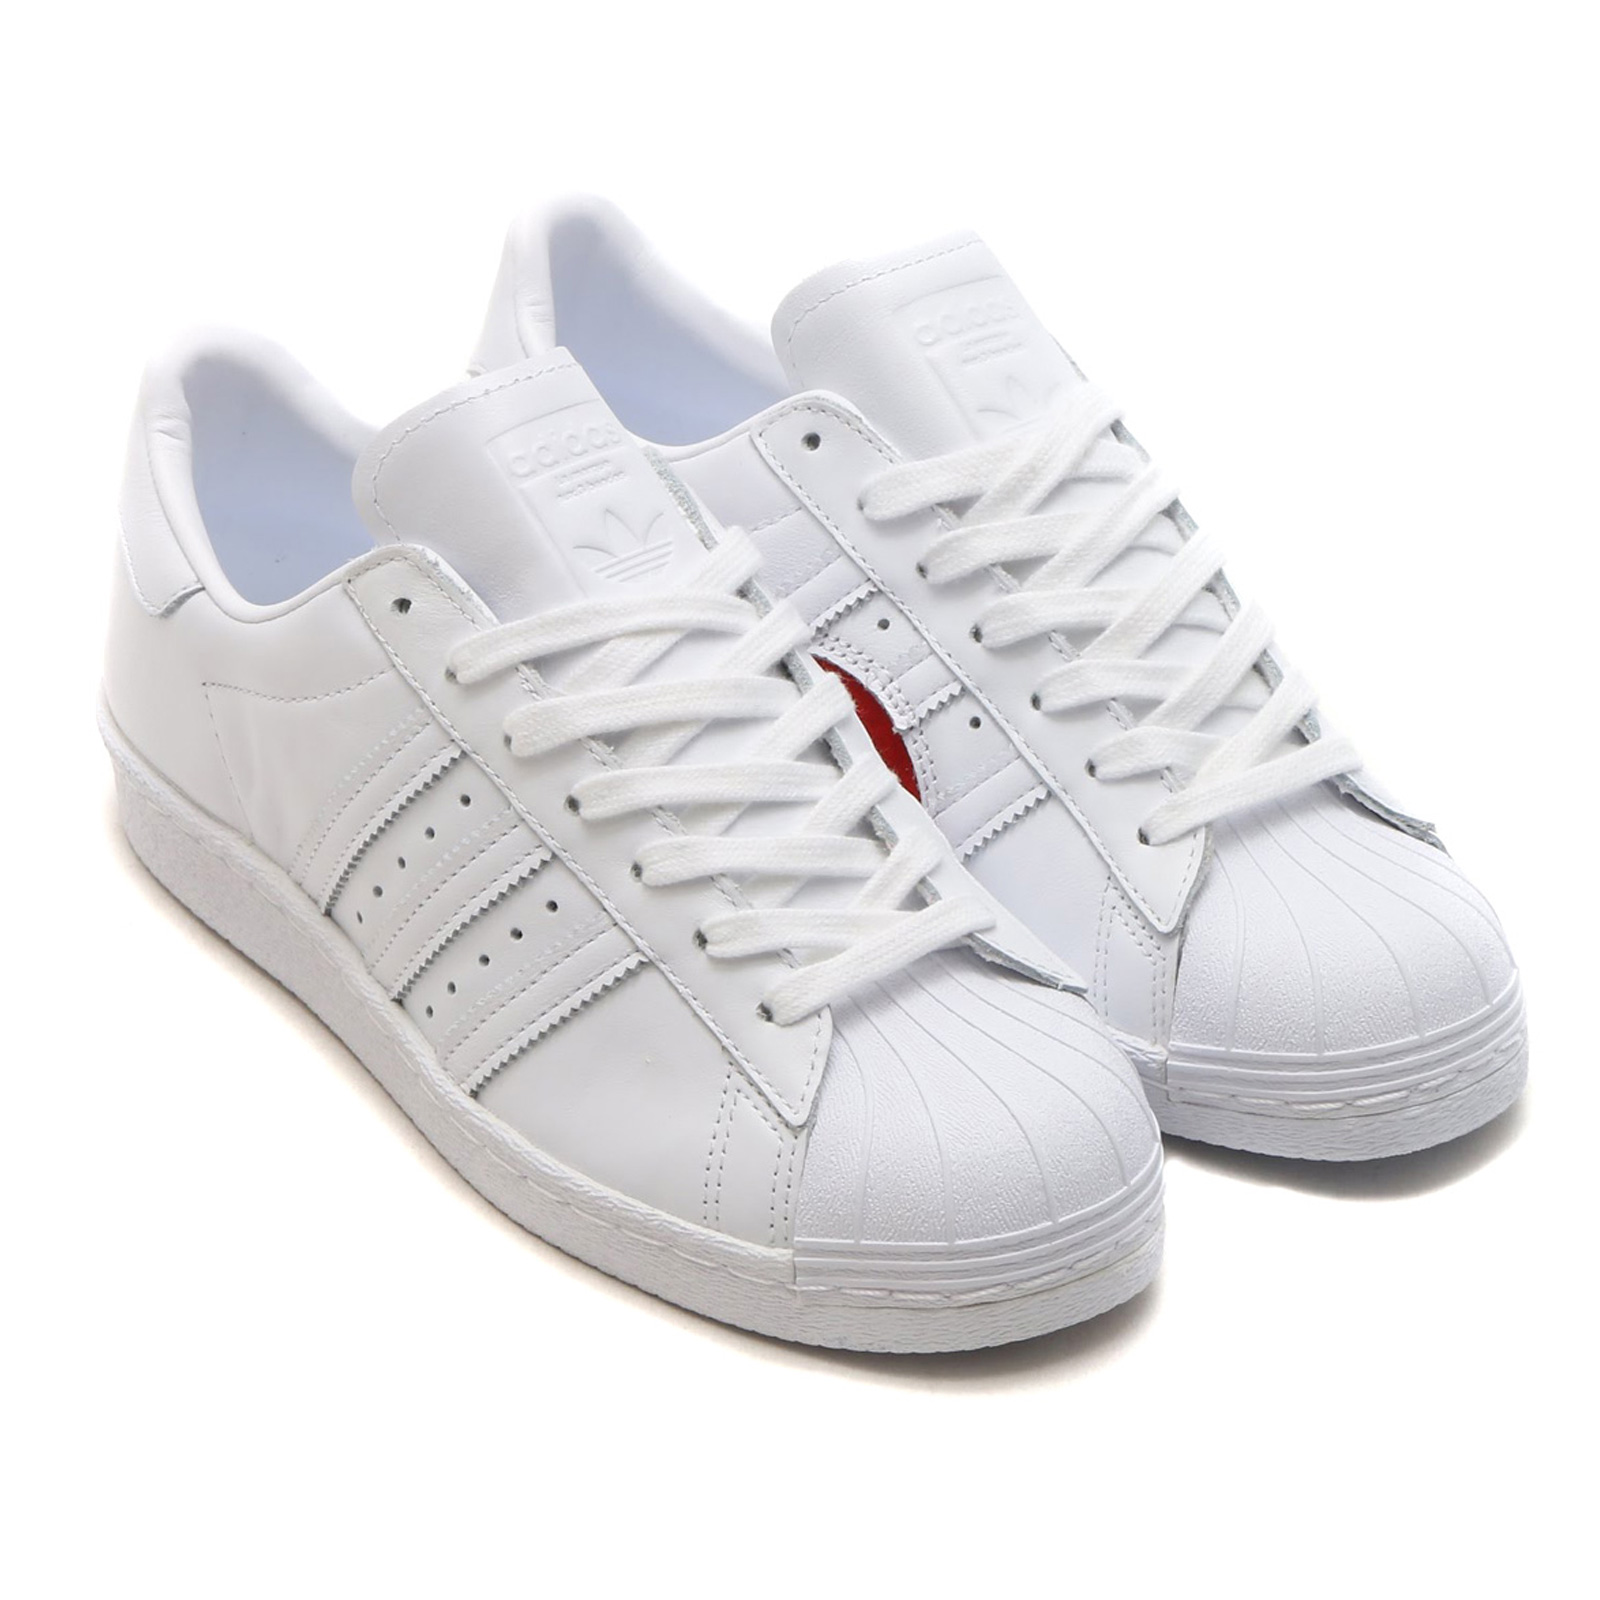 Details CQ3009 Hh Trainers half about Superstar 80s Adidas